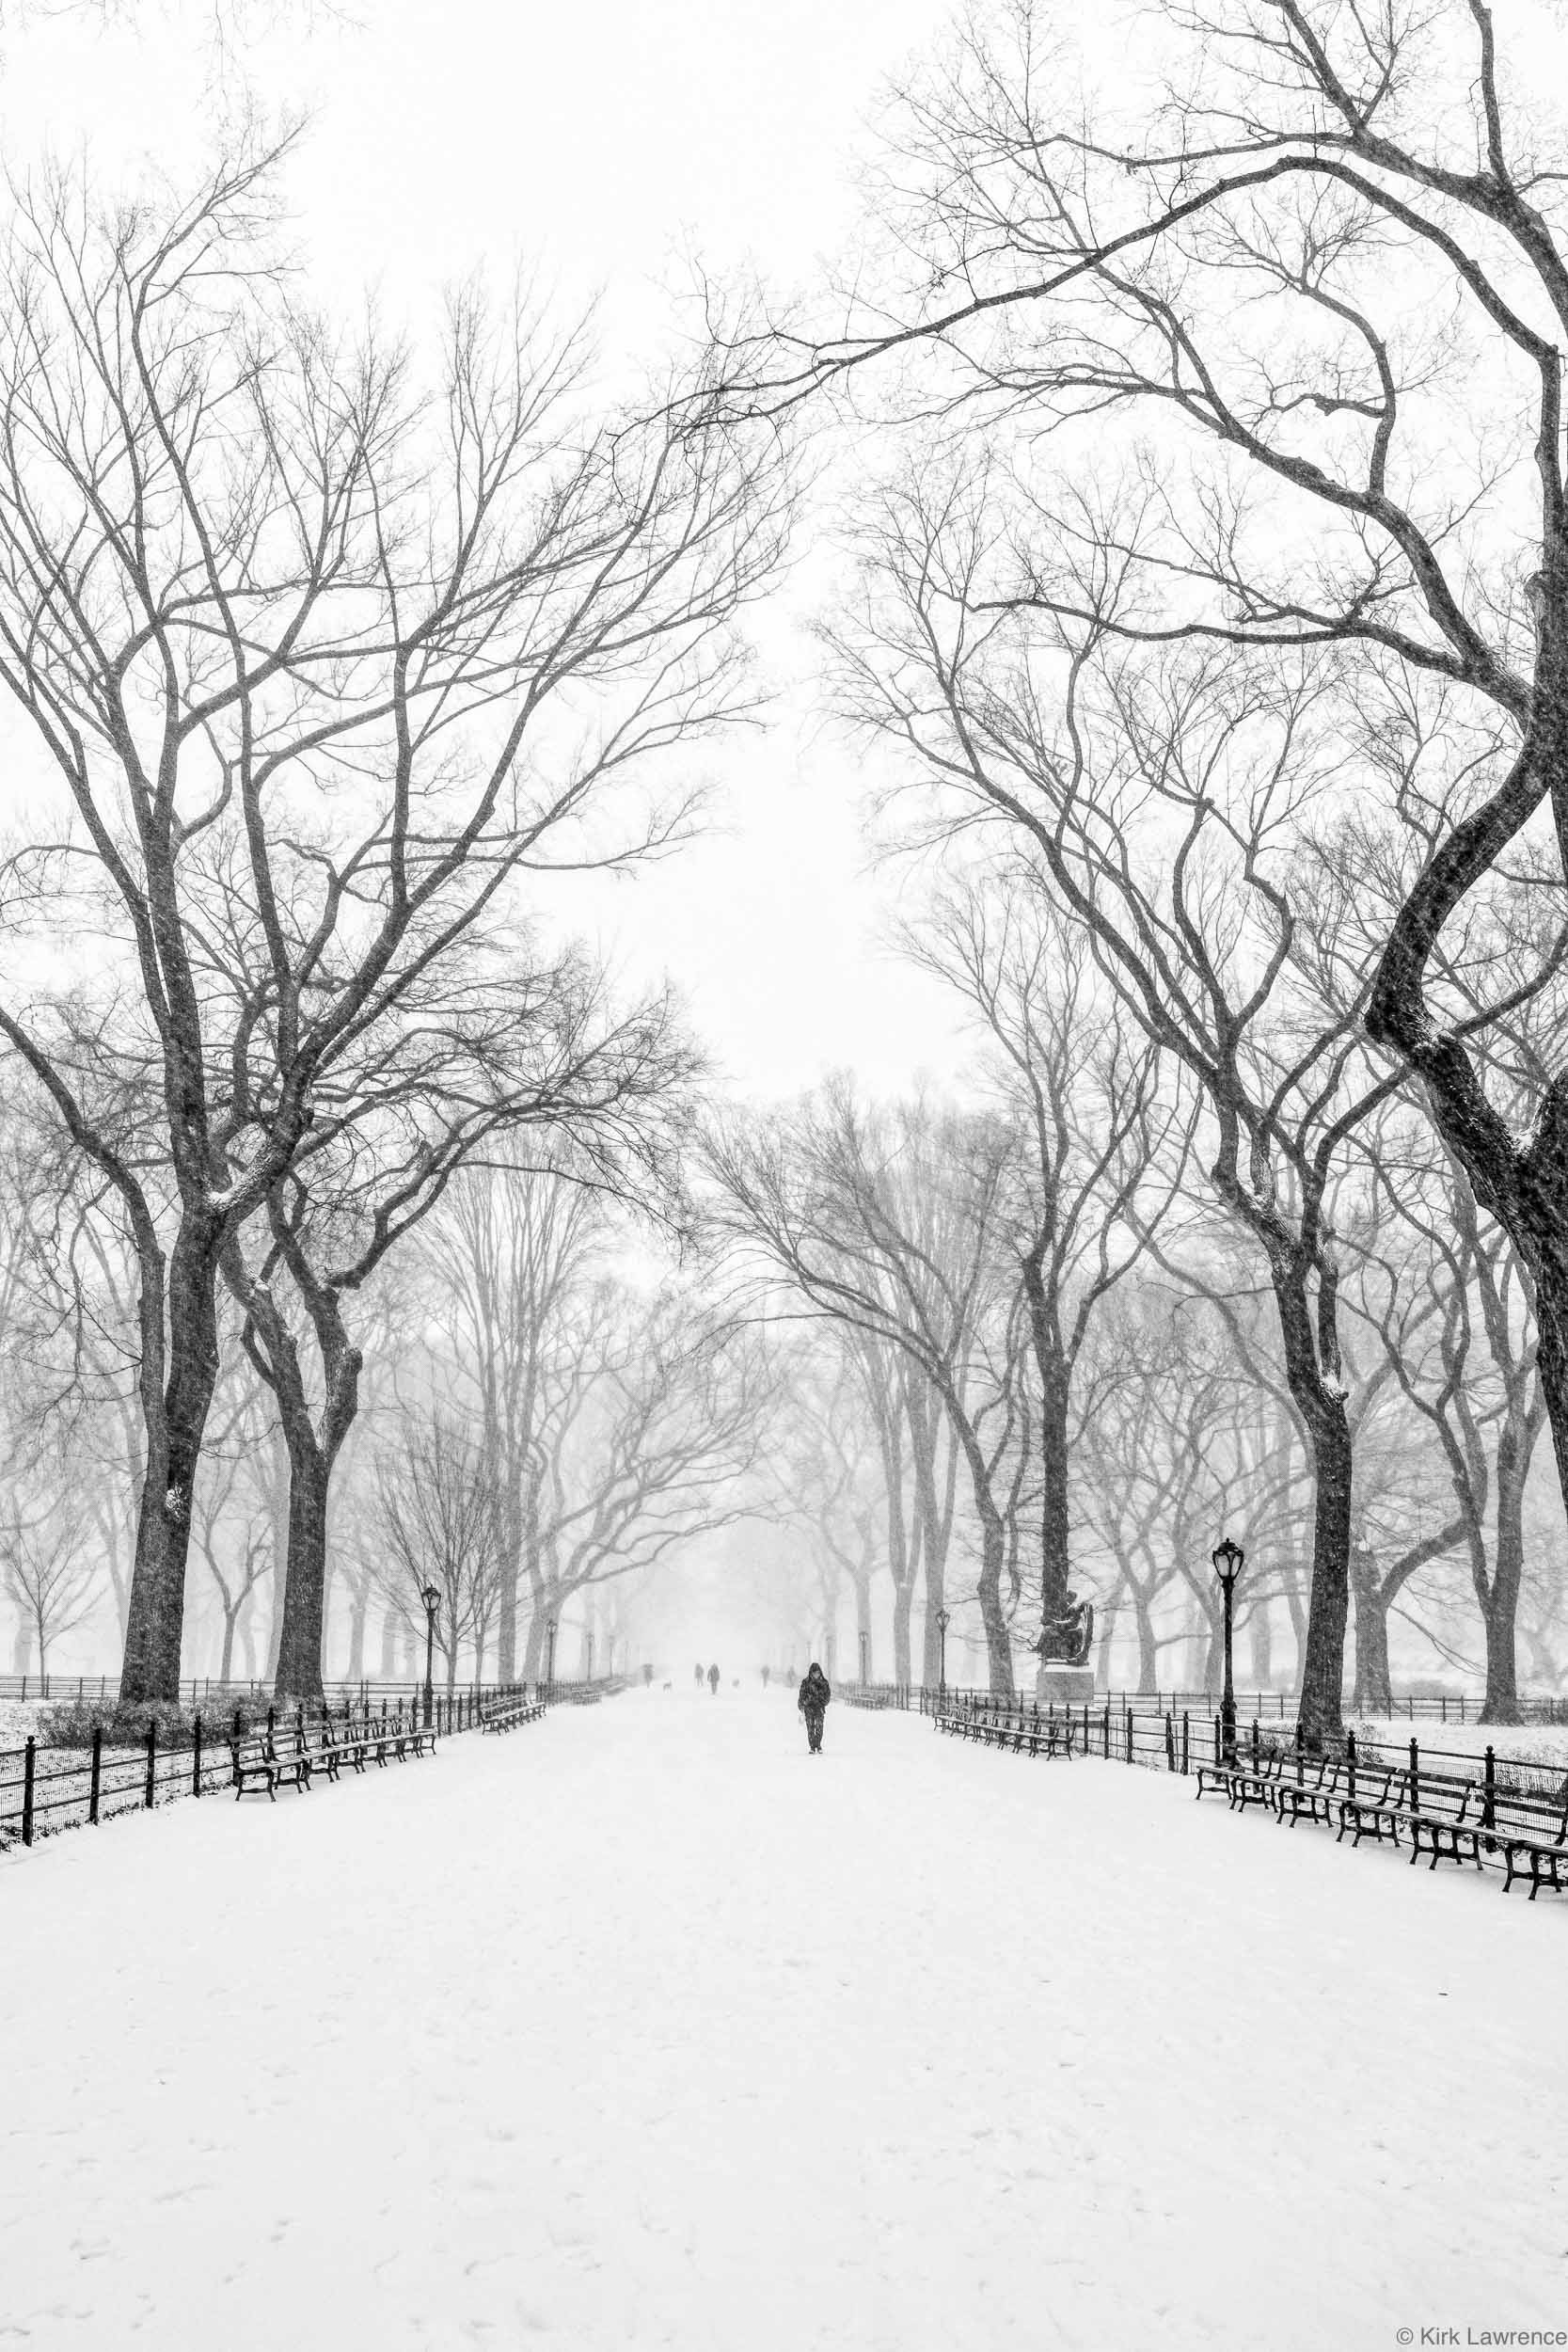 Central_Park_New_York_City_snow_storm.jpg